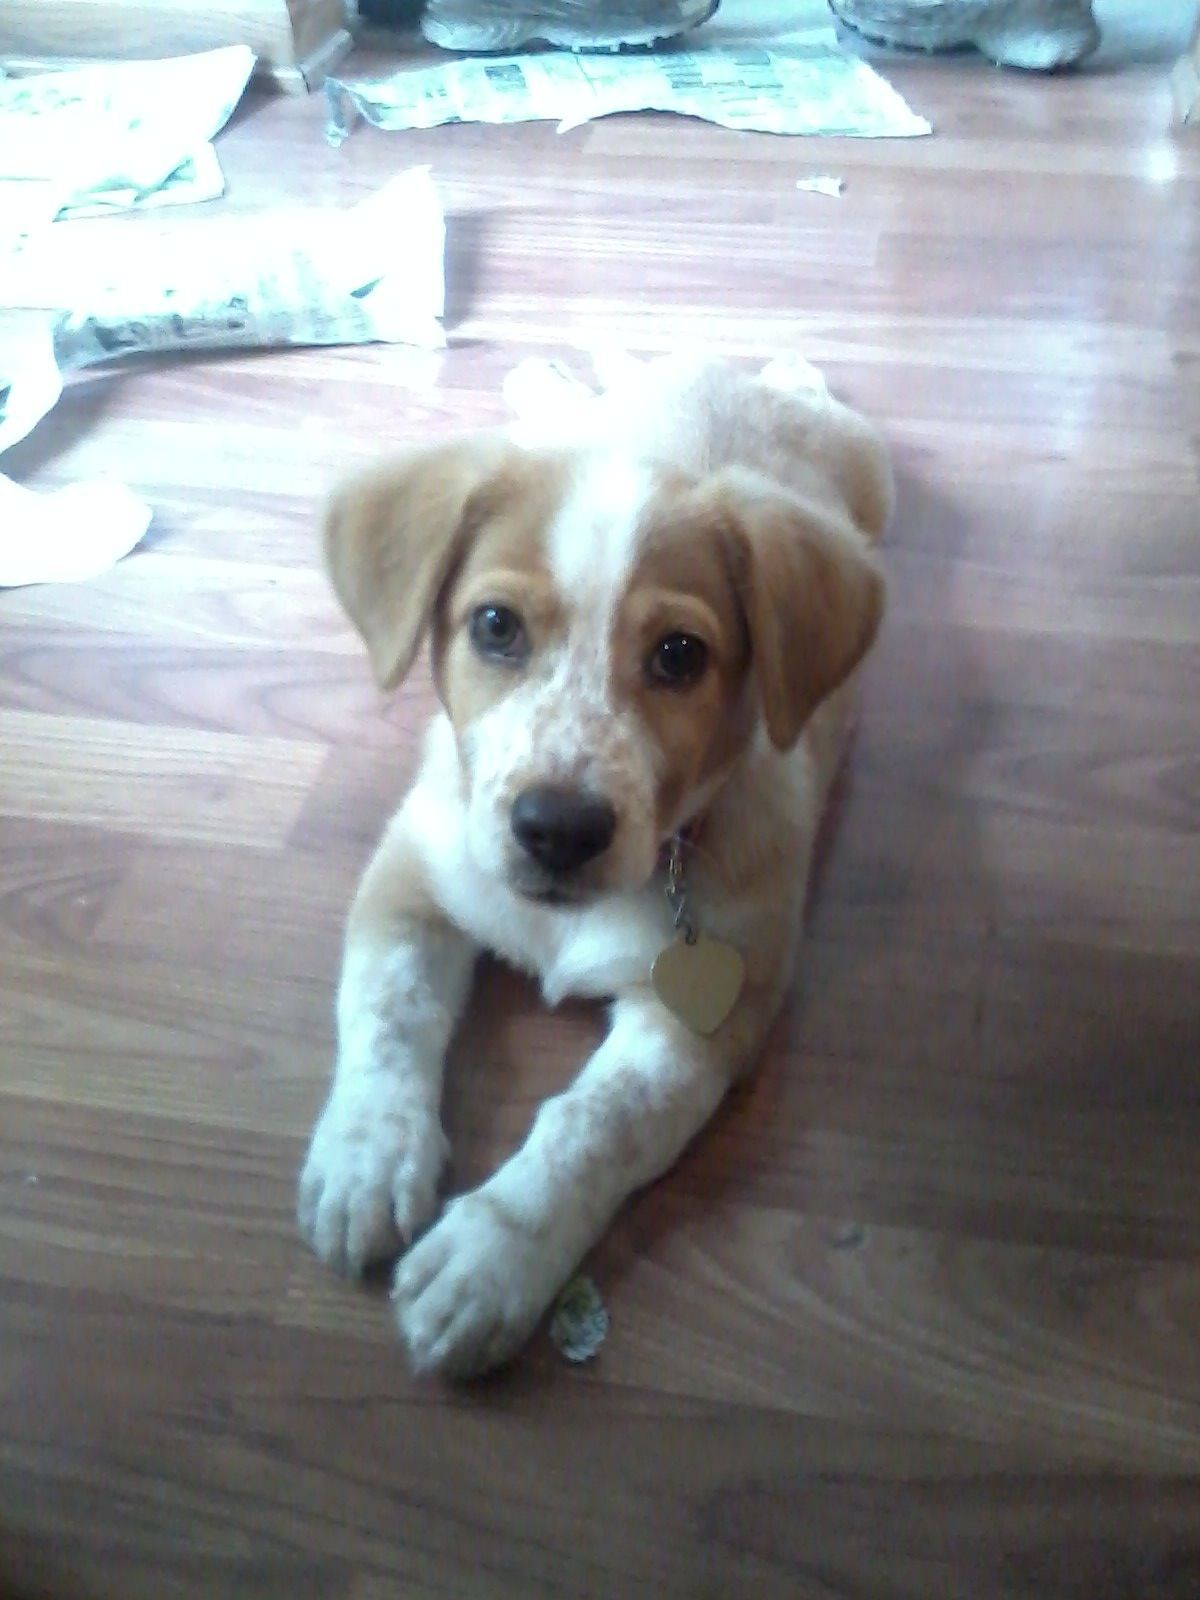 Our Puppy Zoey At 12 Weeks Old She Is A Beagle Corgi Mix Love Those Freckles Of Hers Beagle Mix Beagle Beagle Puppy